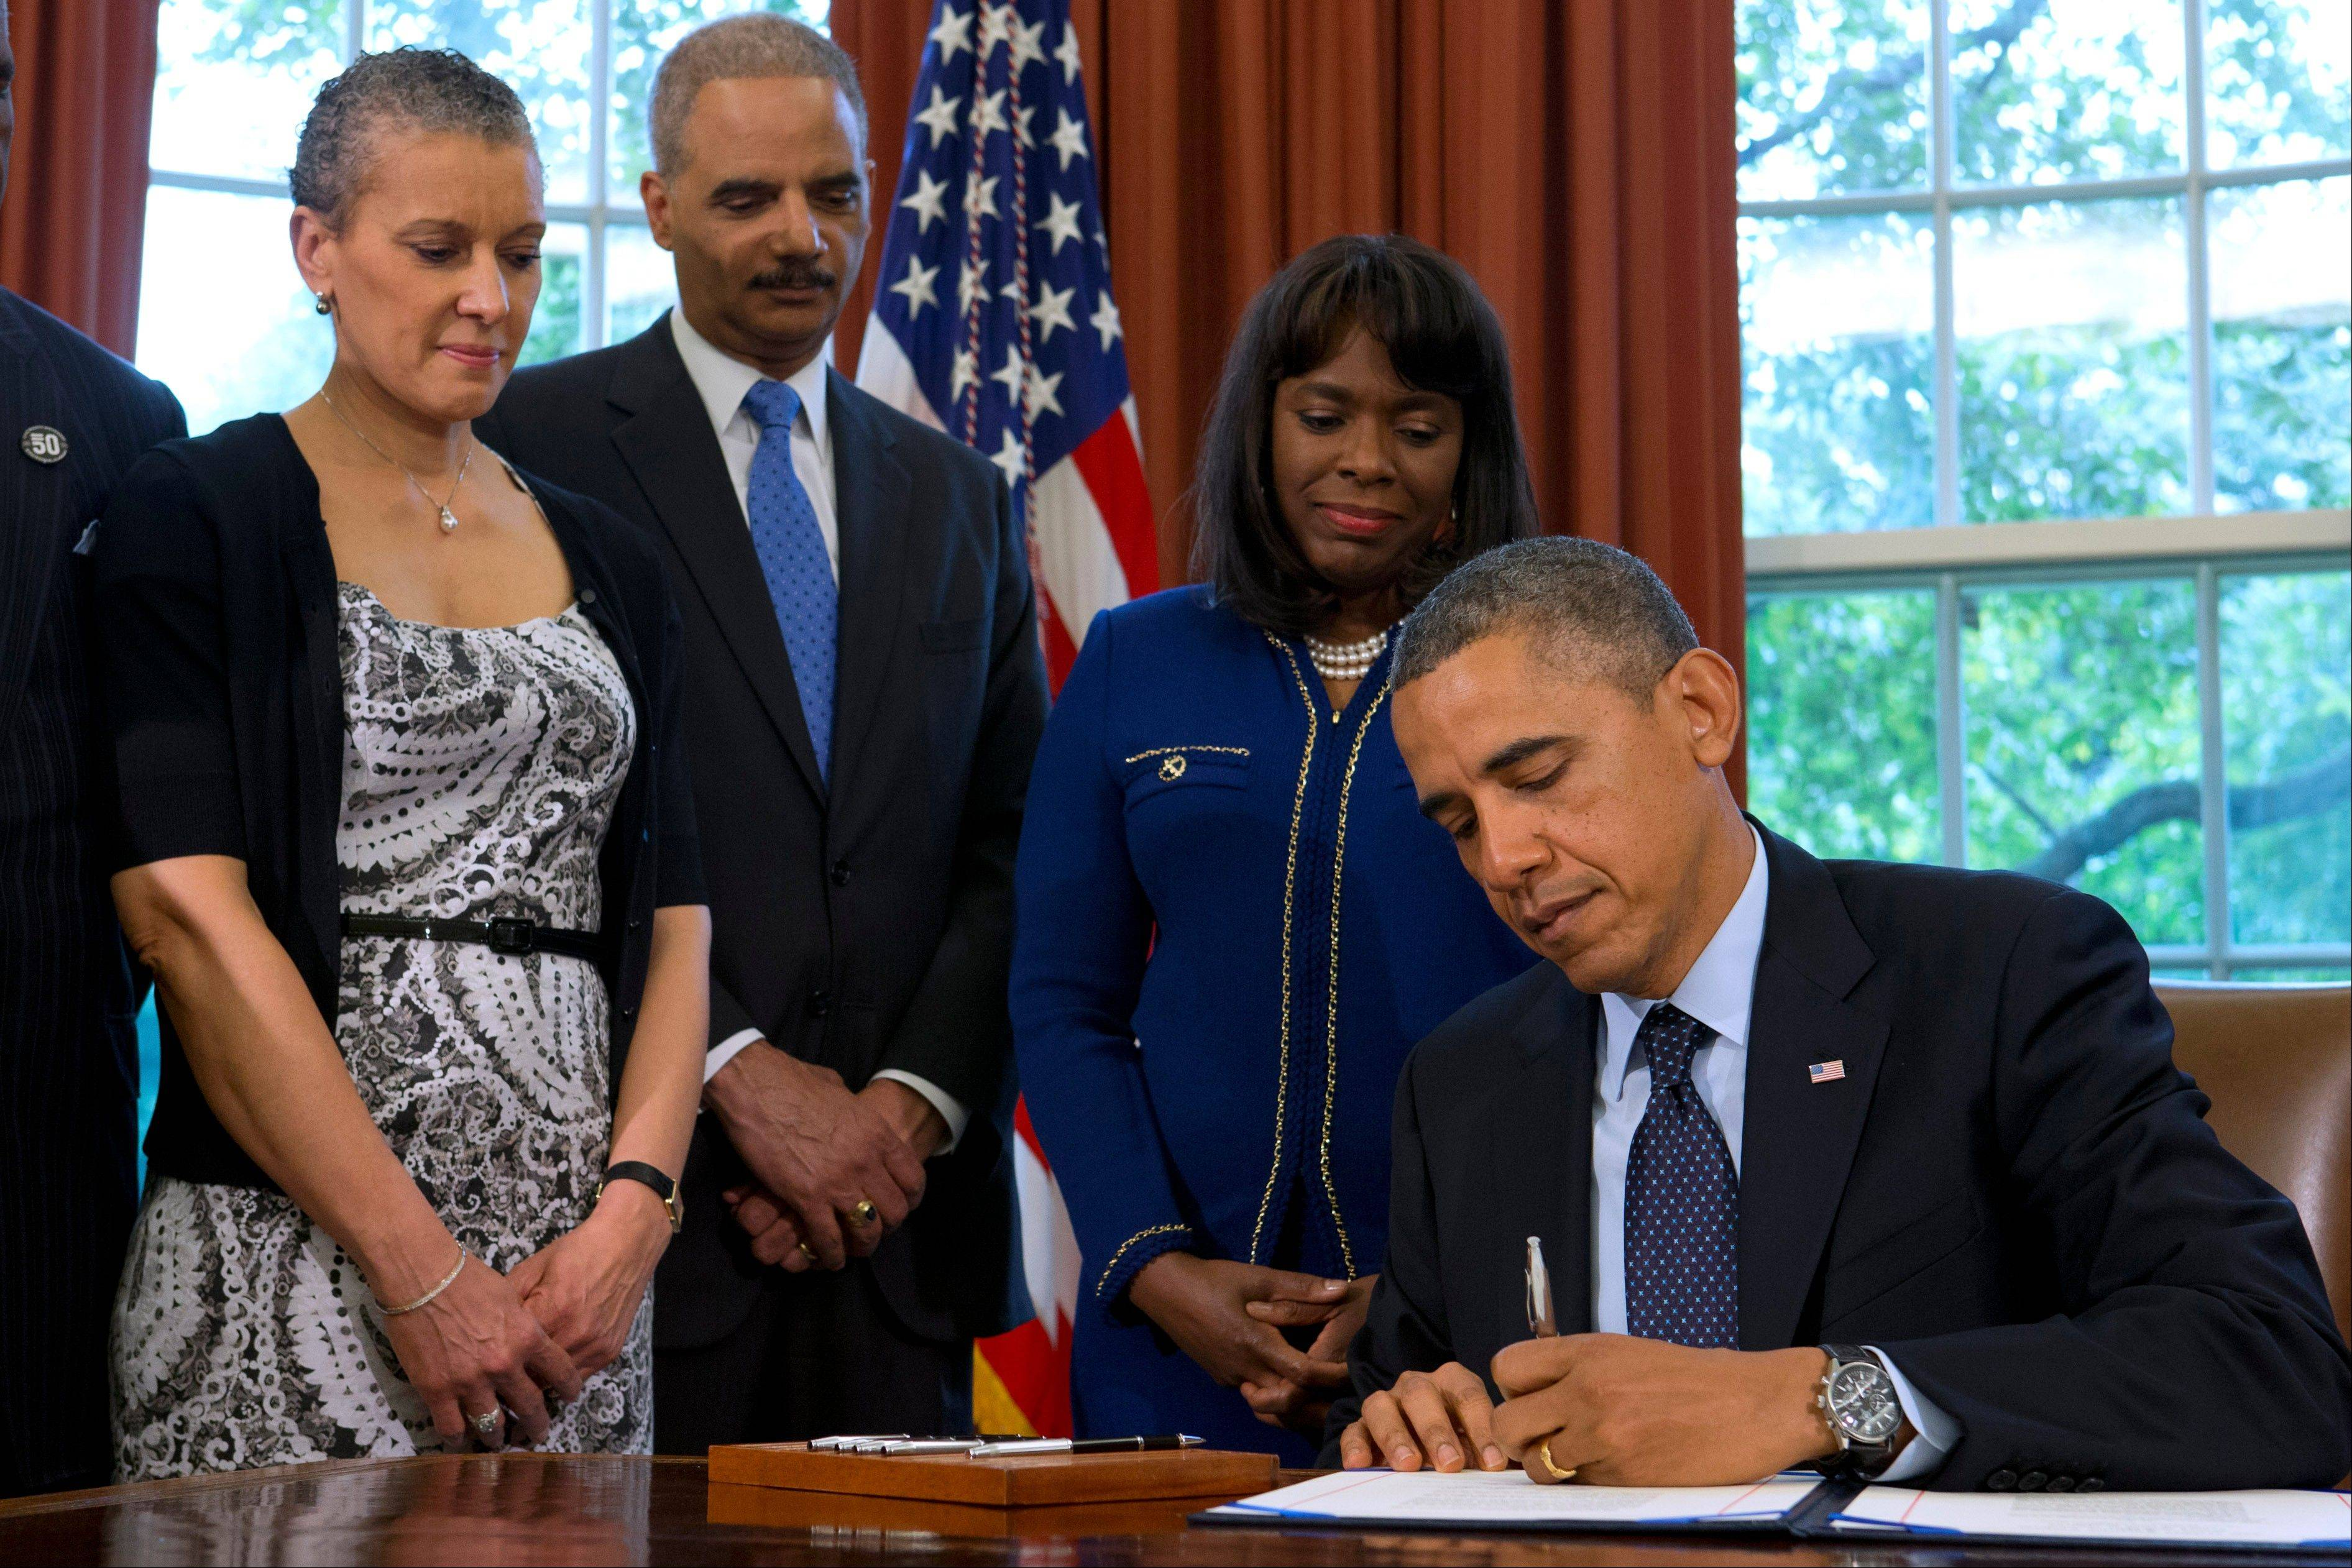 President Barack Obama signs a bill Friday designating the Congressional Gold Medal commemorating the lives of the four young girls killed in the 16th Street Baptist Church Bombing of 1963, in the Oval Office of the White House in Washington. Watching, from left are, Dr. Sharon Malone, wife of Attorney General Eric Holder; Attorney General Eric Holder and Rep. Terri Sewell, a Democratic sponsor of the bill.